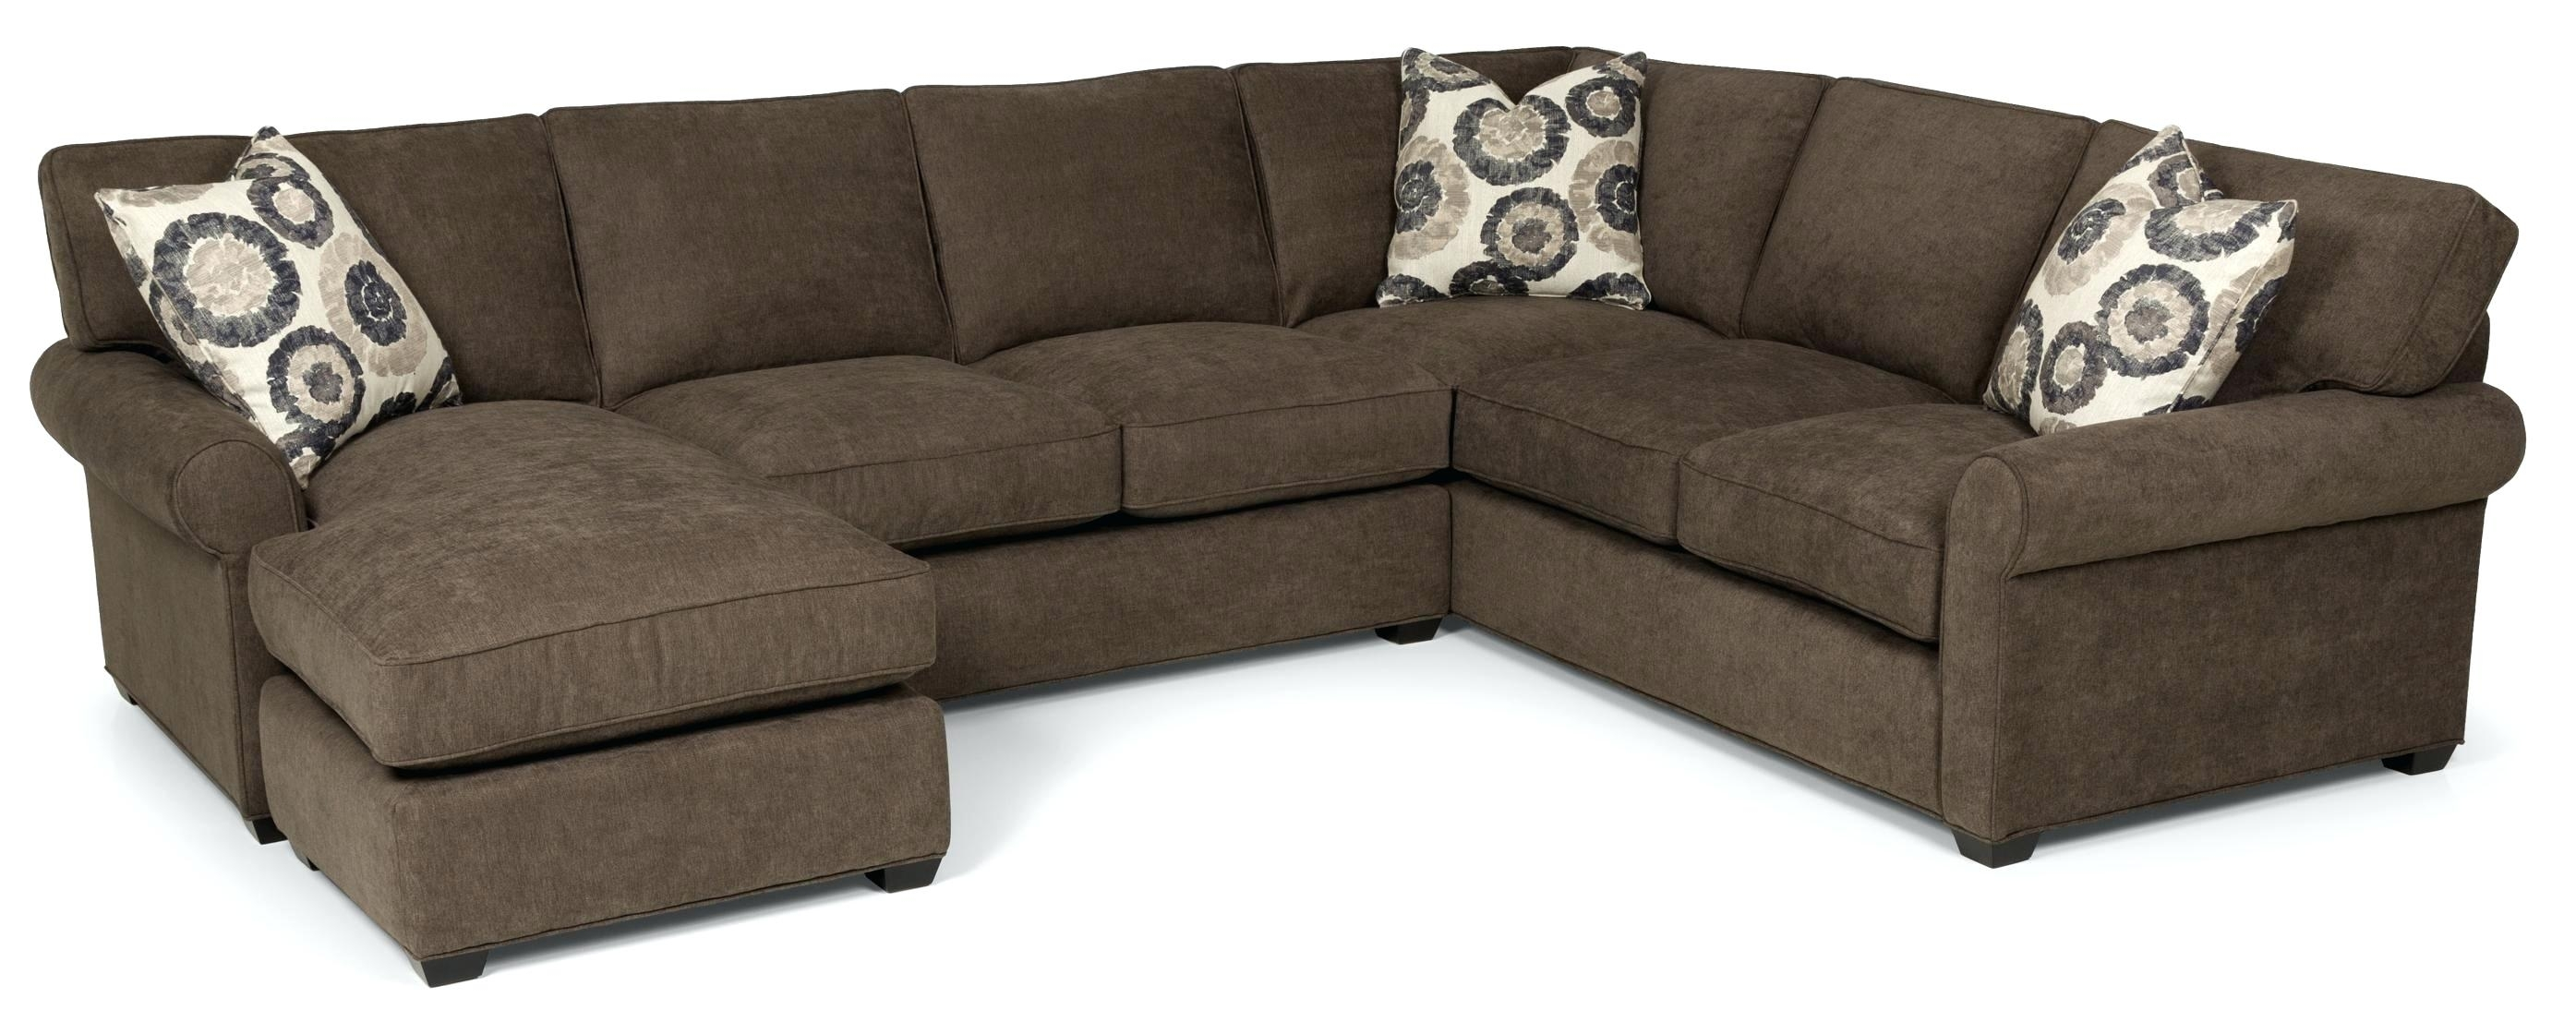 2 Piece Sectional Sofa With Chaise 2 Piece Sectional With Chaise Within Jobs Oat 2 Piece Sectionals With Left Facing Chaise (Image 1 of 25)